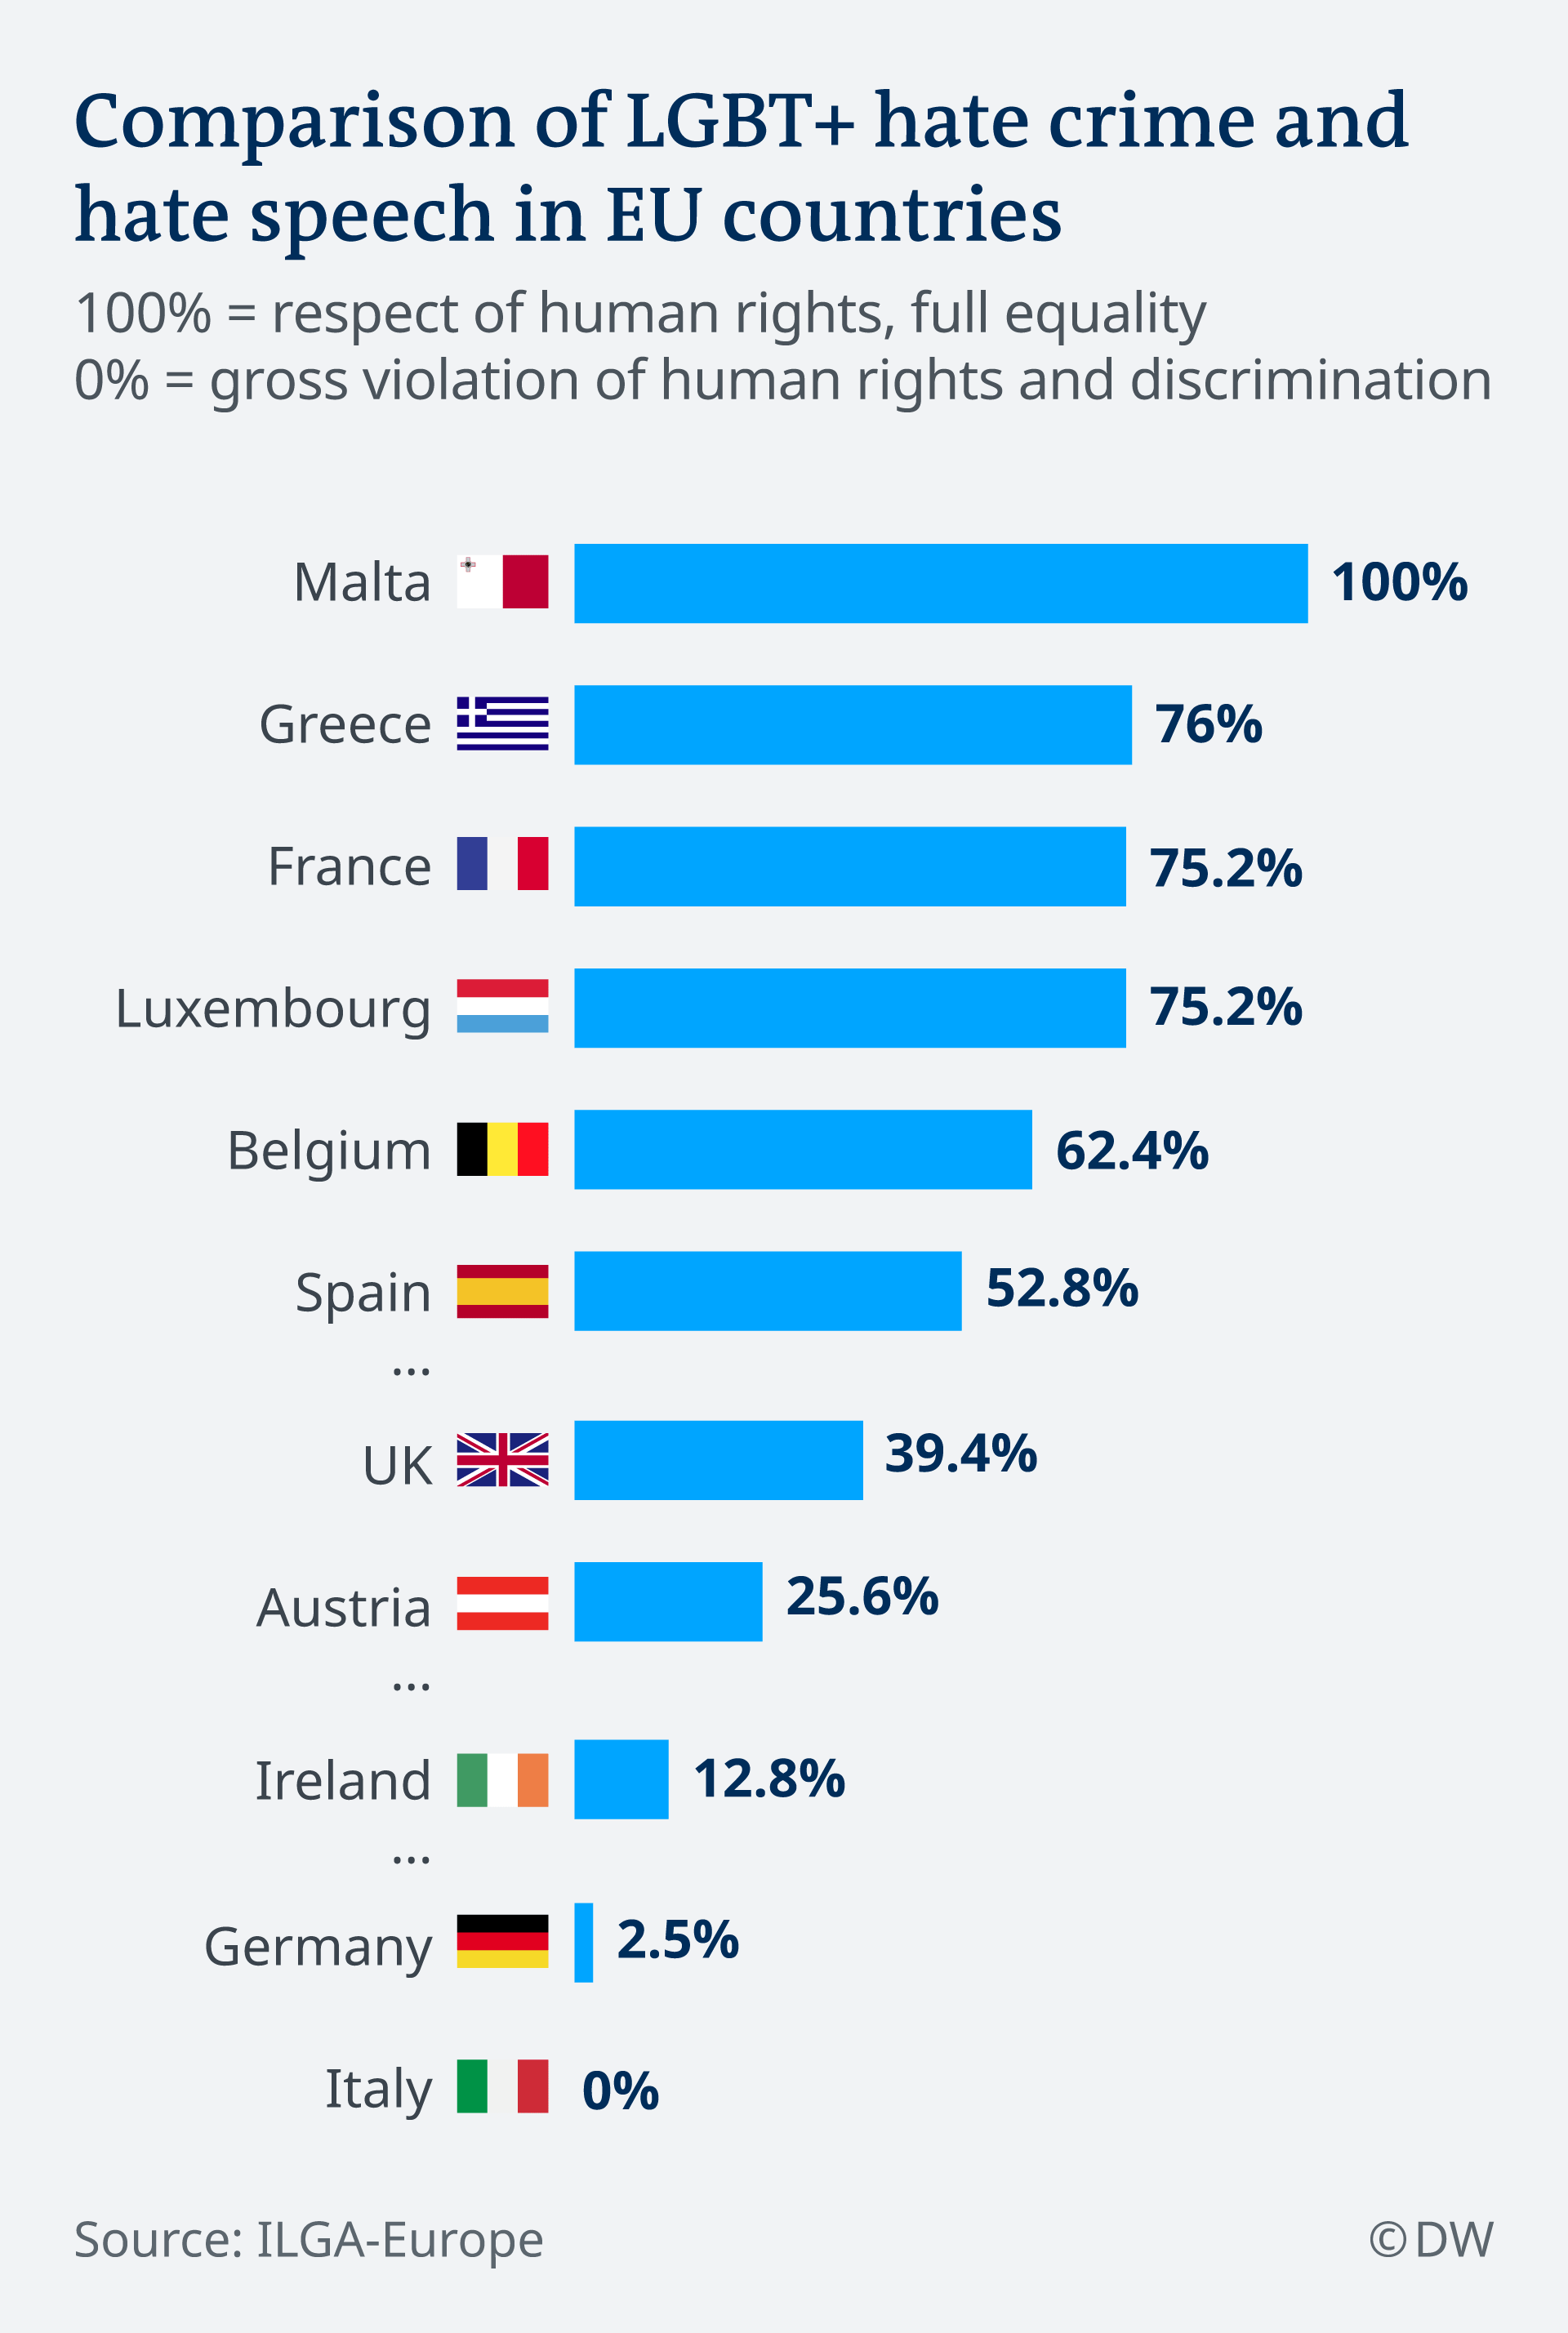 Comparison of LGBT+ hate crime and hate speech in selected EU countries